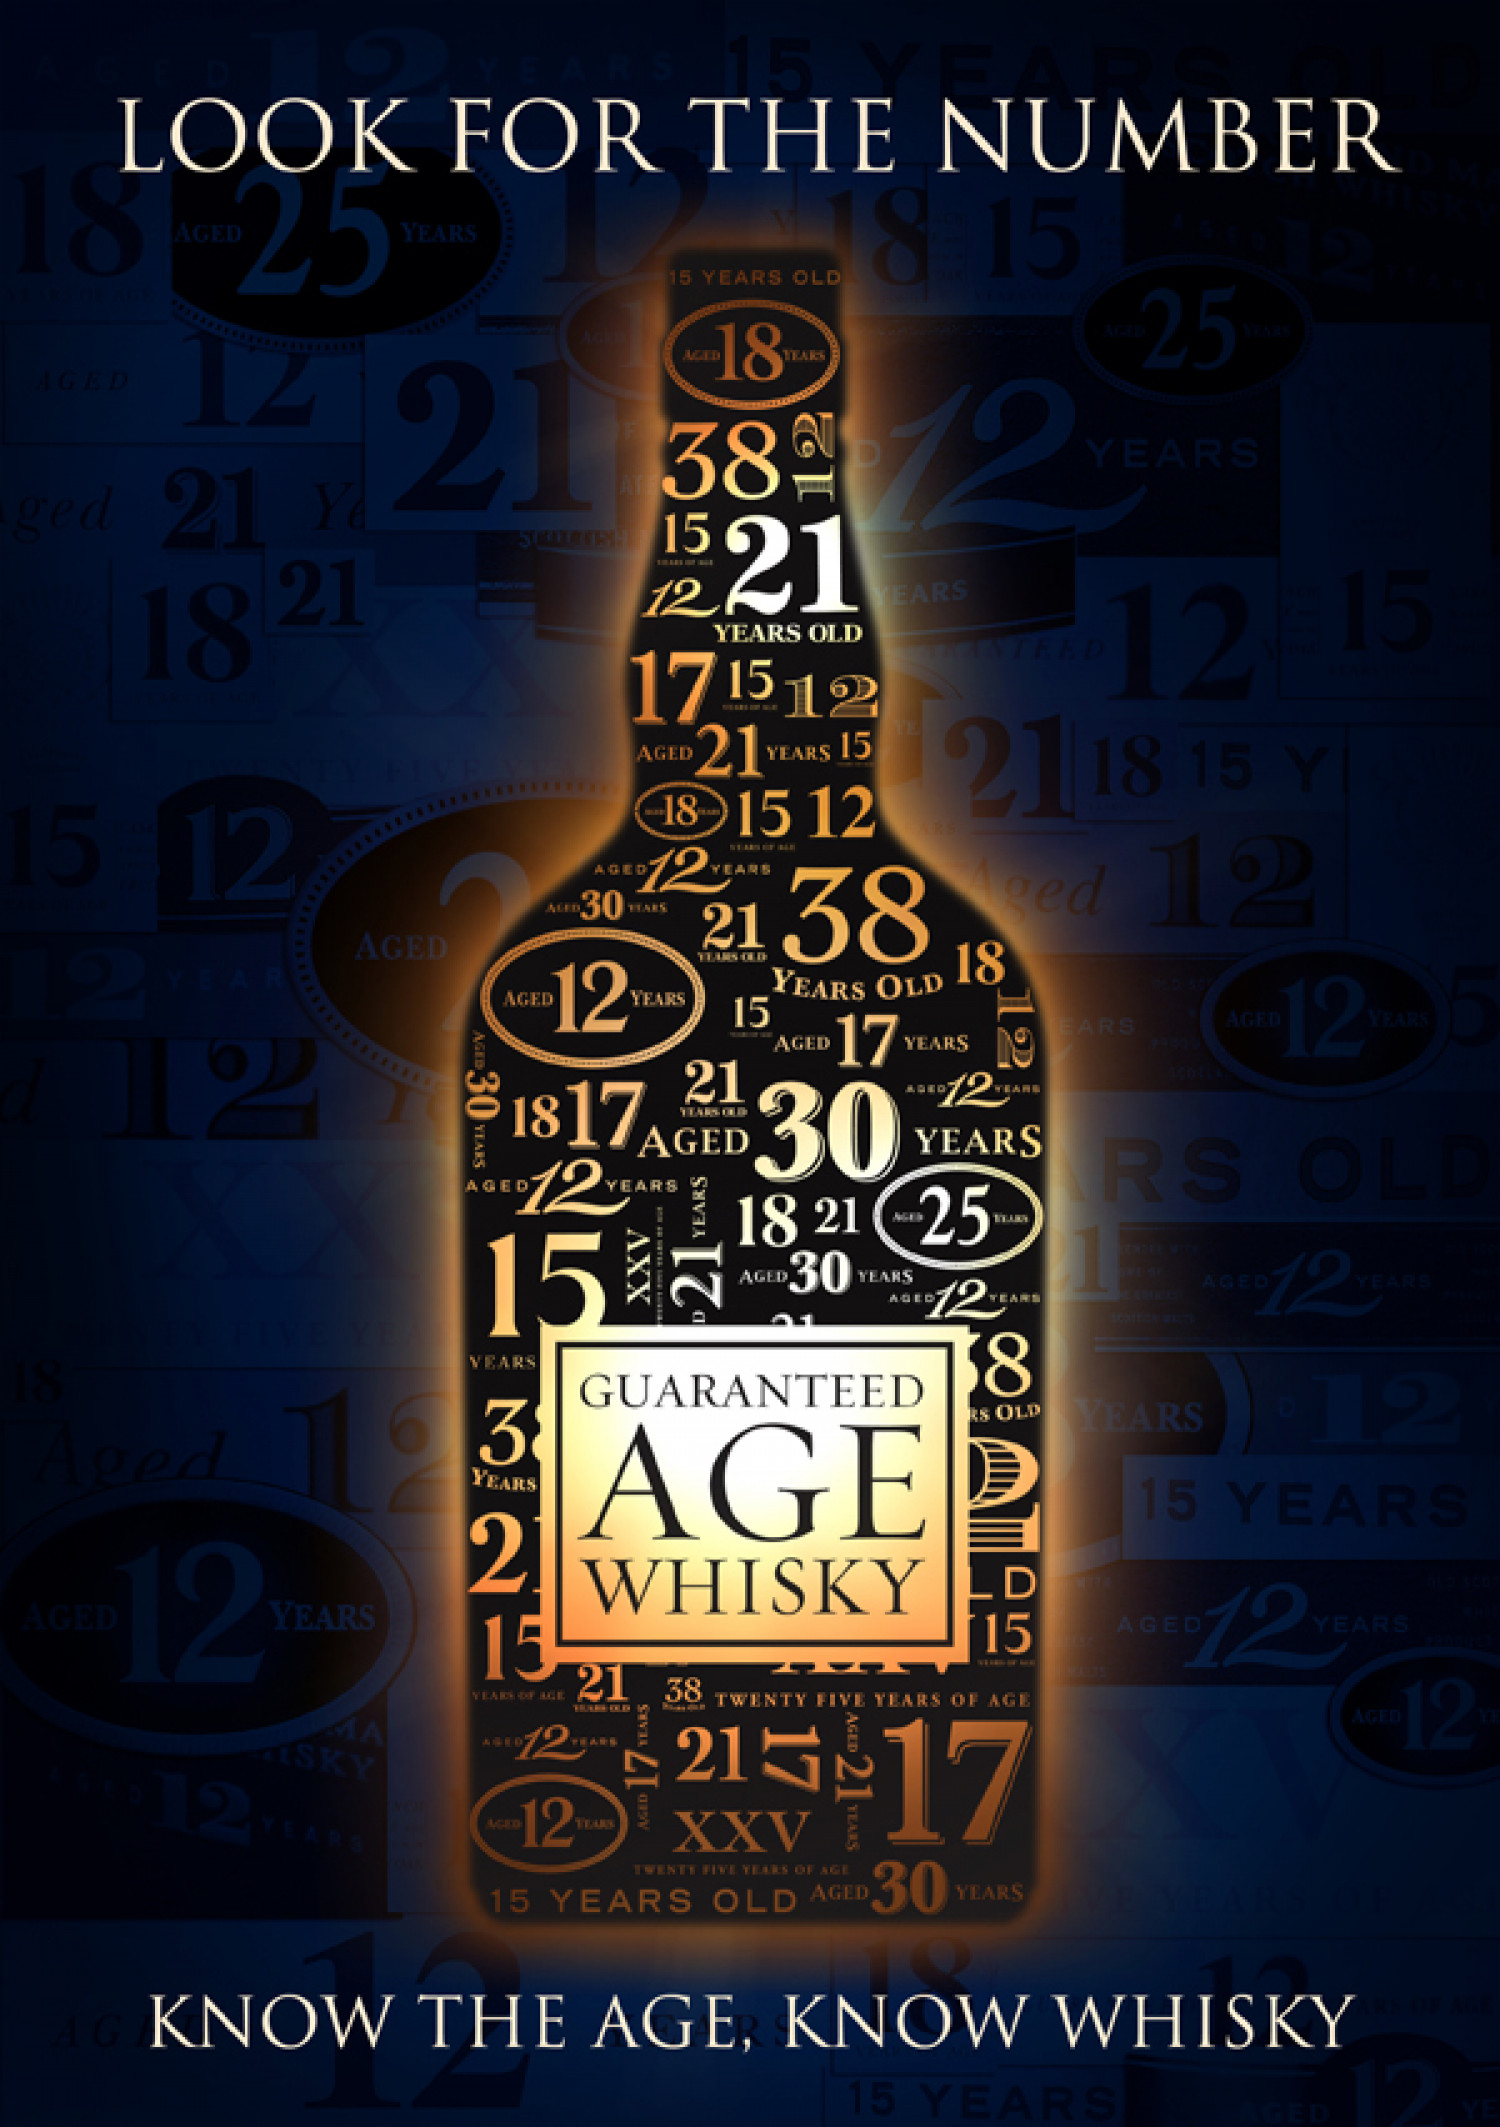 Chivas Brothers Company Says that 'The Age Matters' Infographic